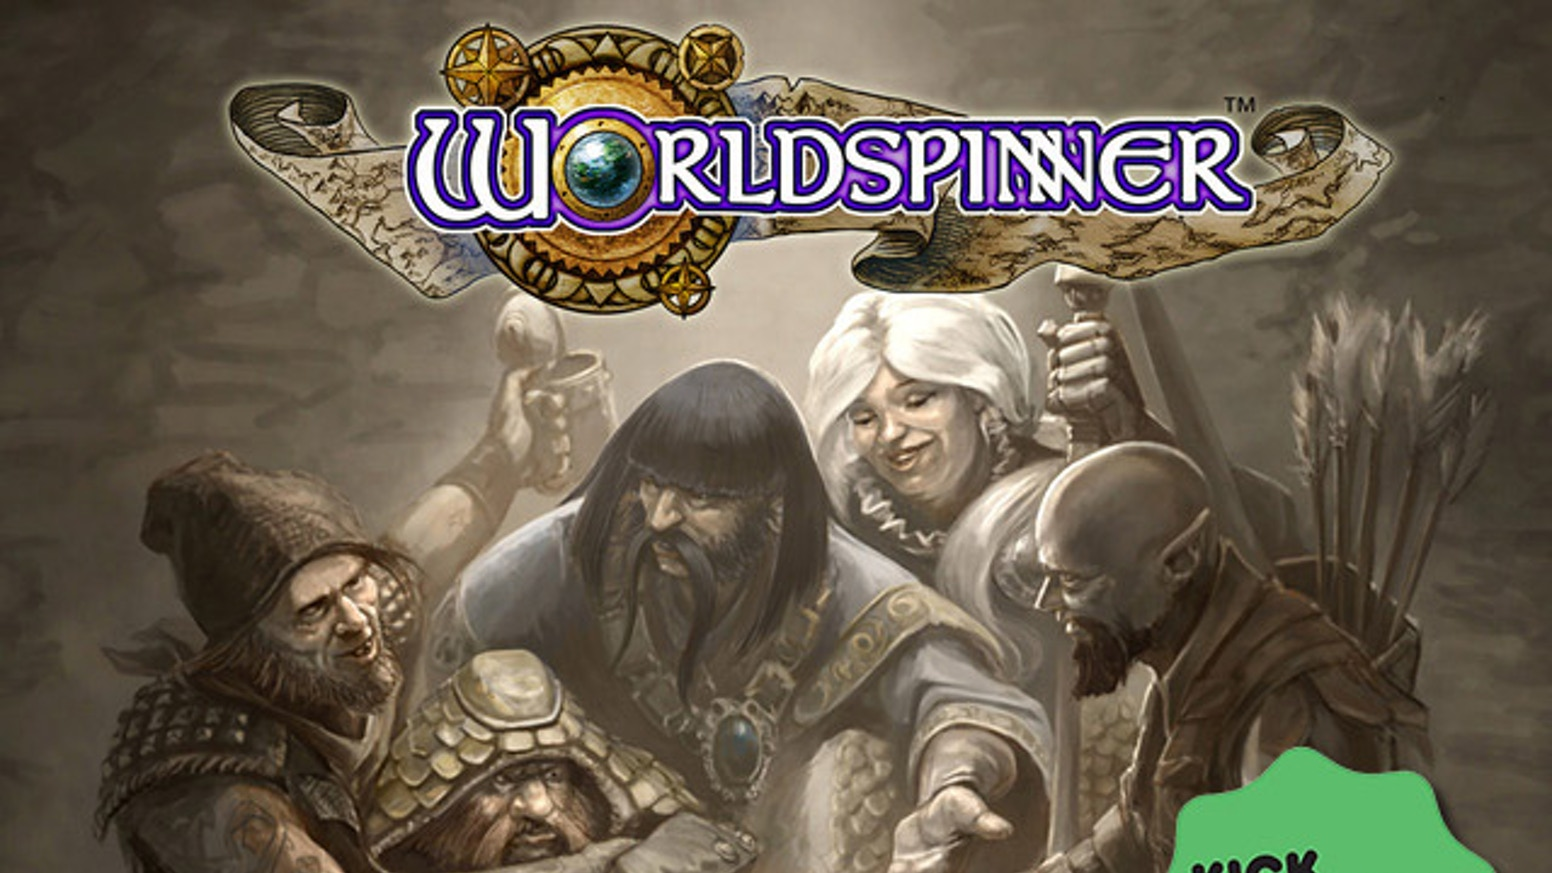 Worldspinner™ makes it easy to create richly detailed maps of your own fantasy world in minutes.